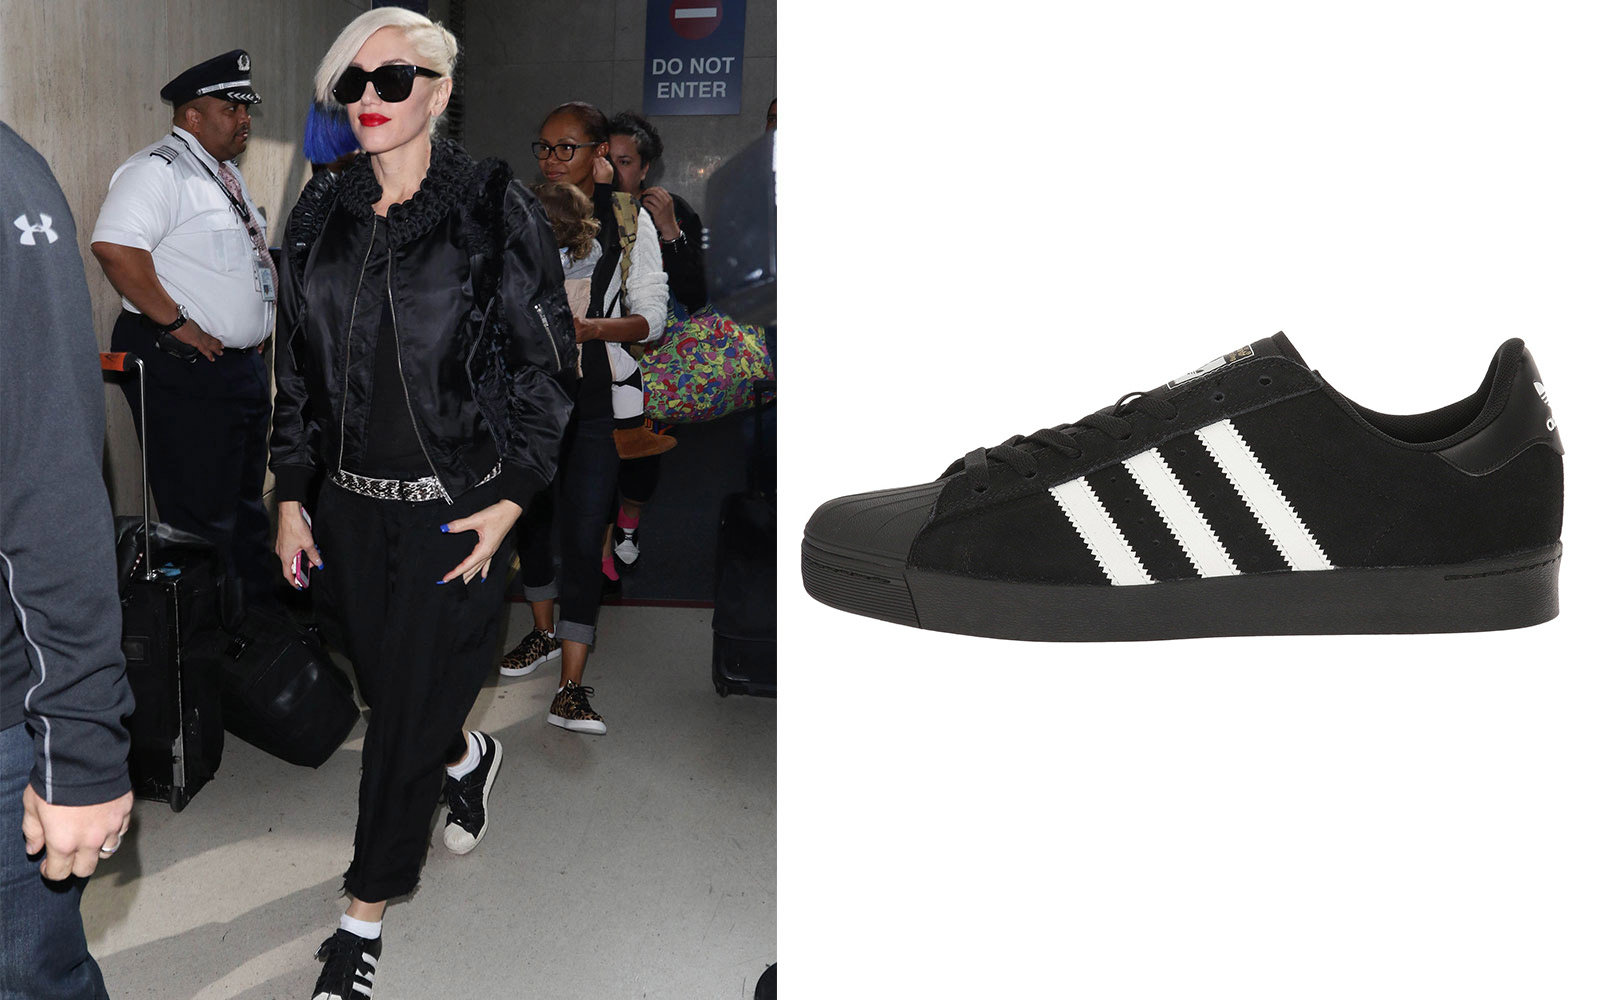 592baa972d The Stylish Comfy Shoes That Celebrities Wear for Traveling